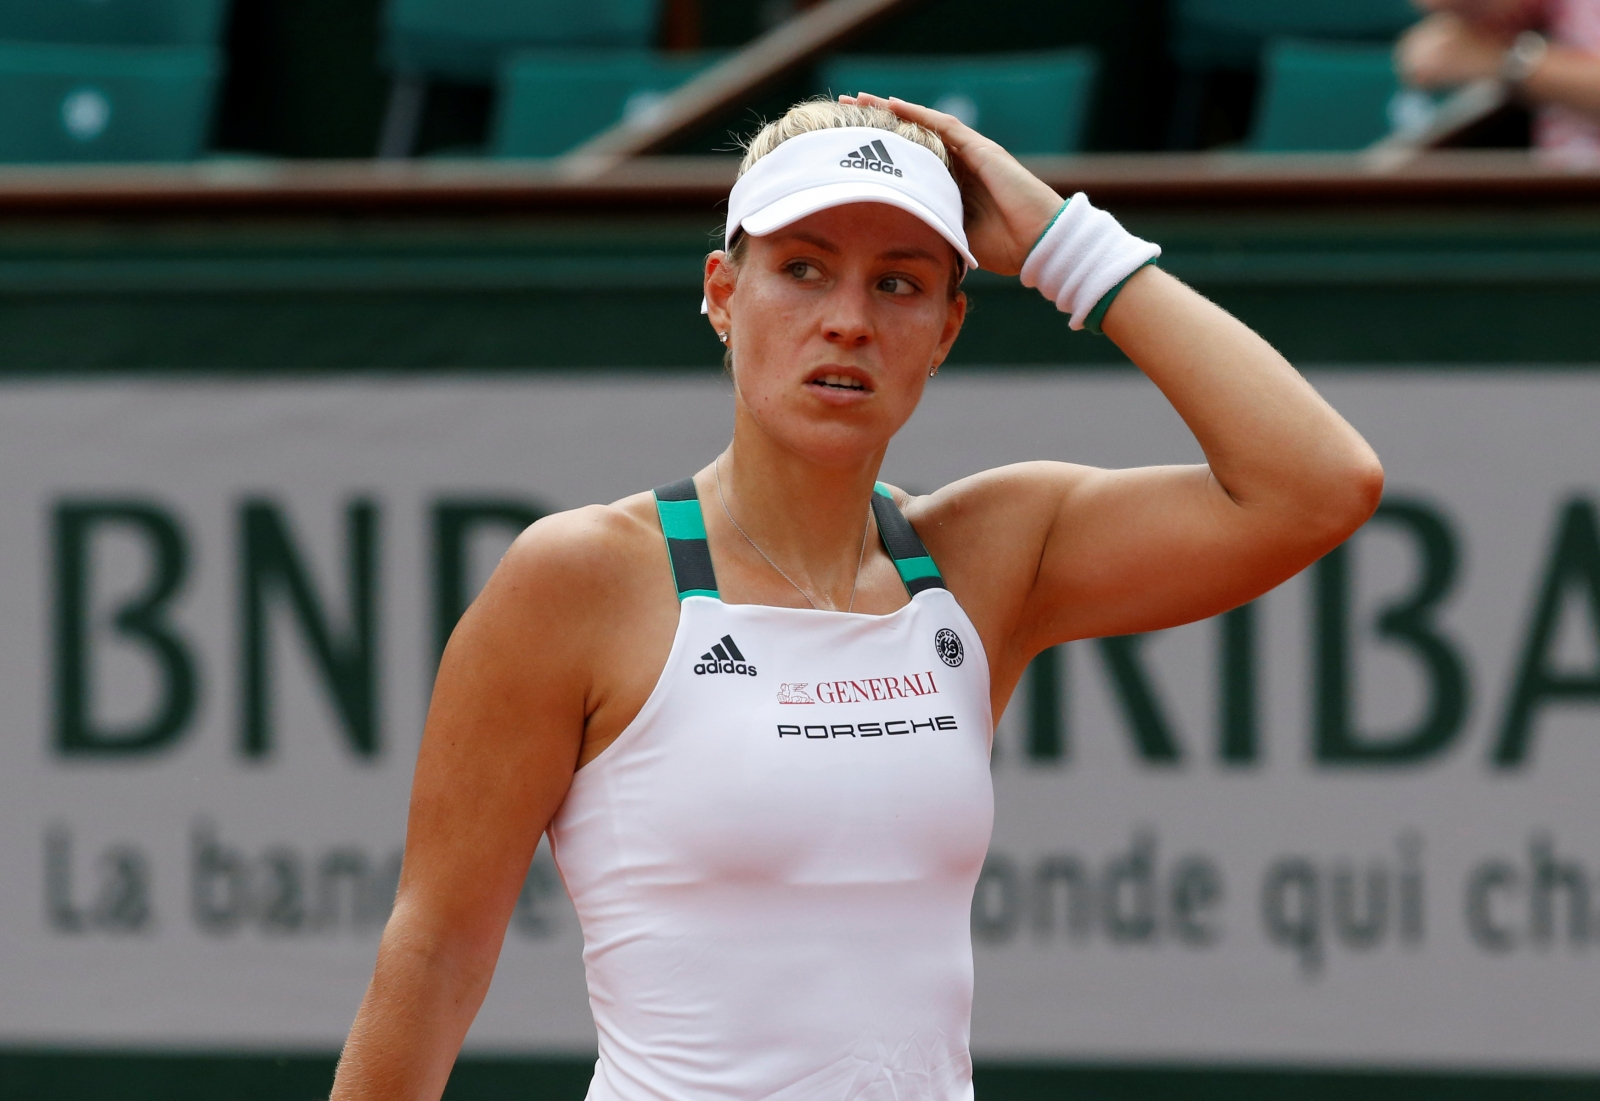 No. 1 Kerber falls in first round